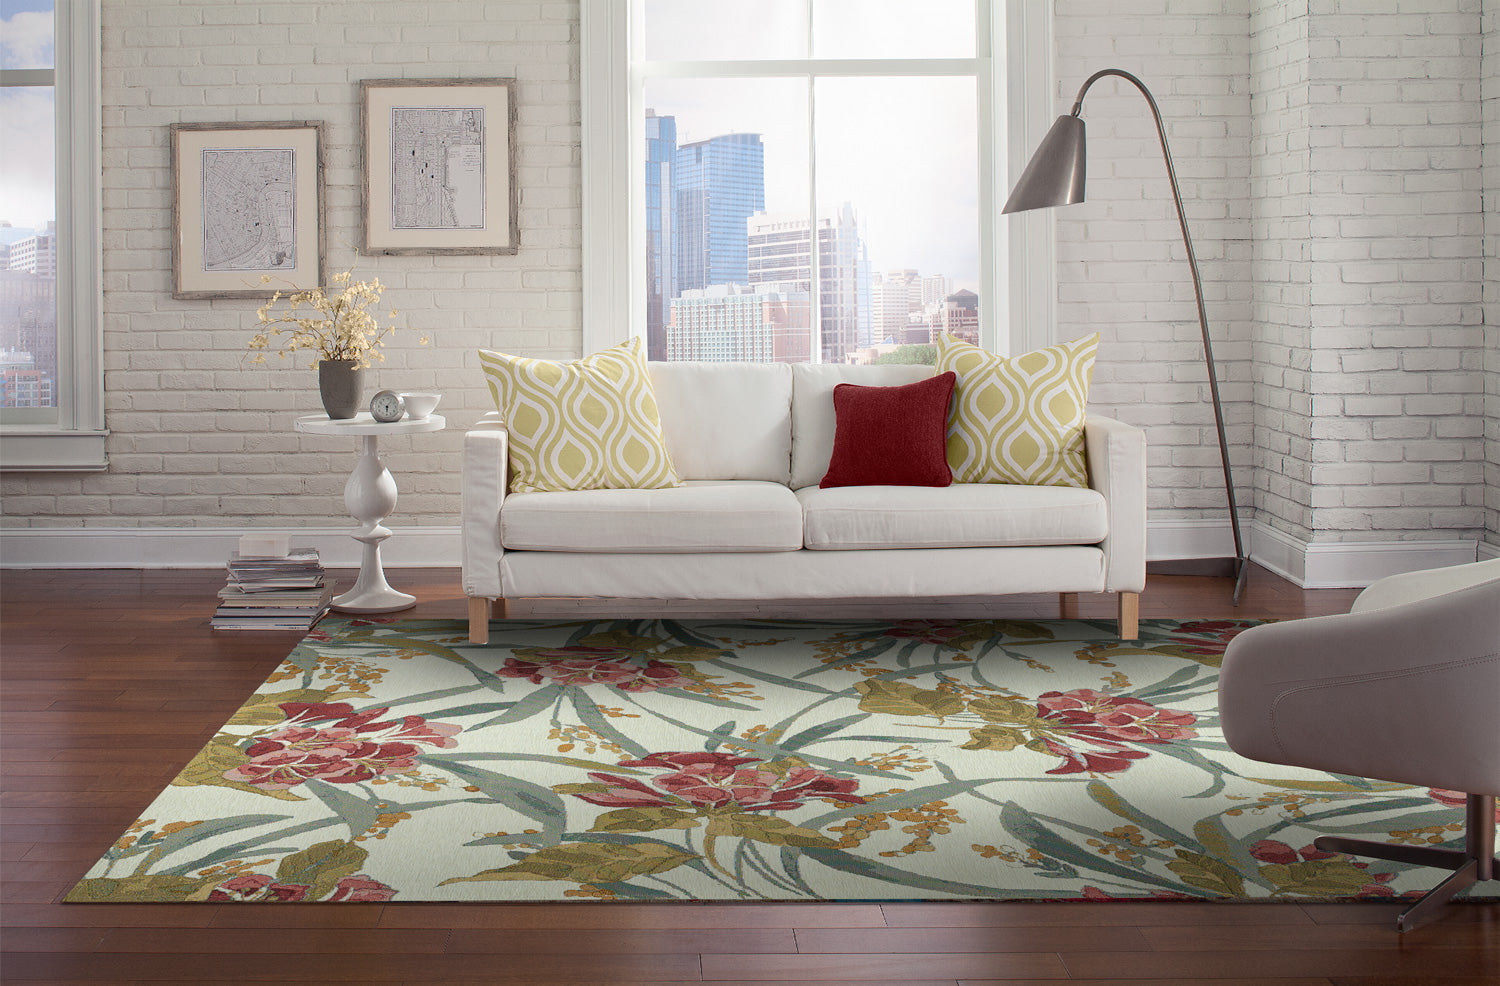 Floral Rugs 101 - Everything you need to know to make it Work!